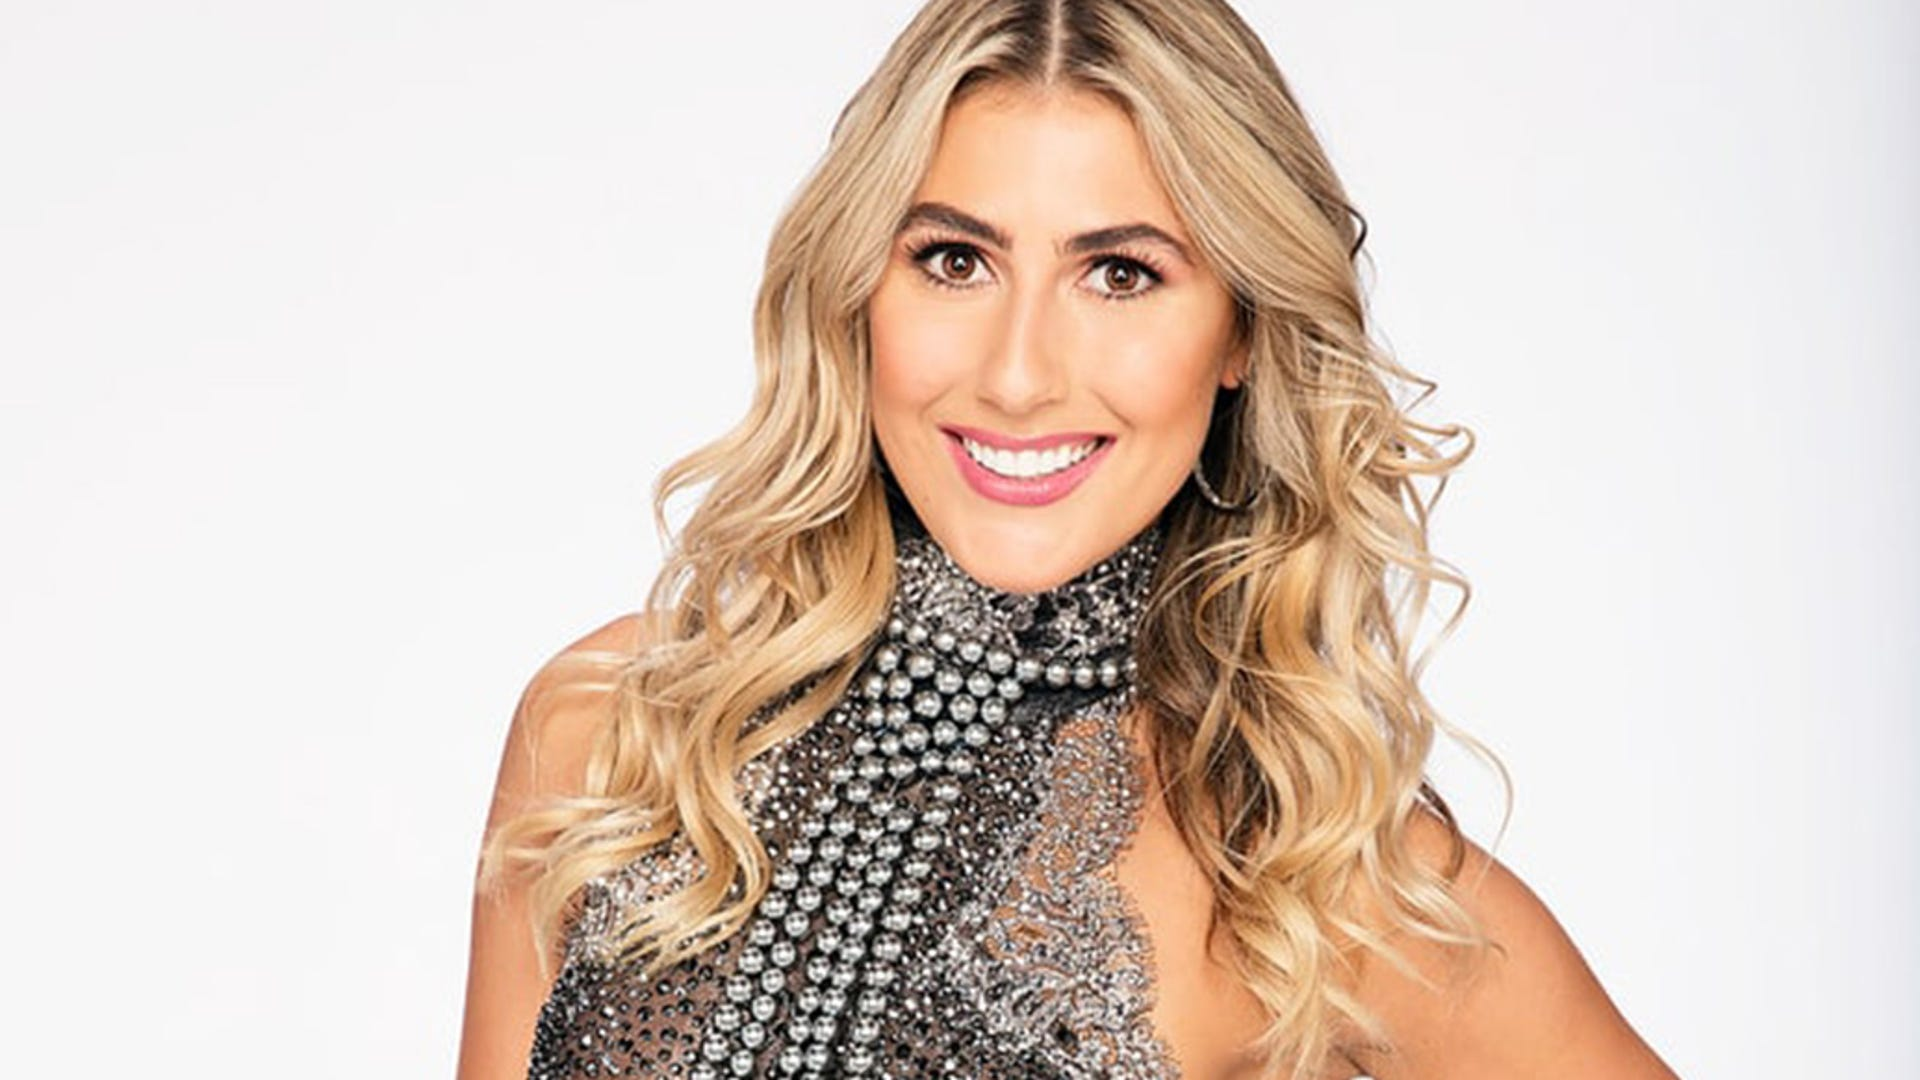 Emma Slater, Dancing with the Stars